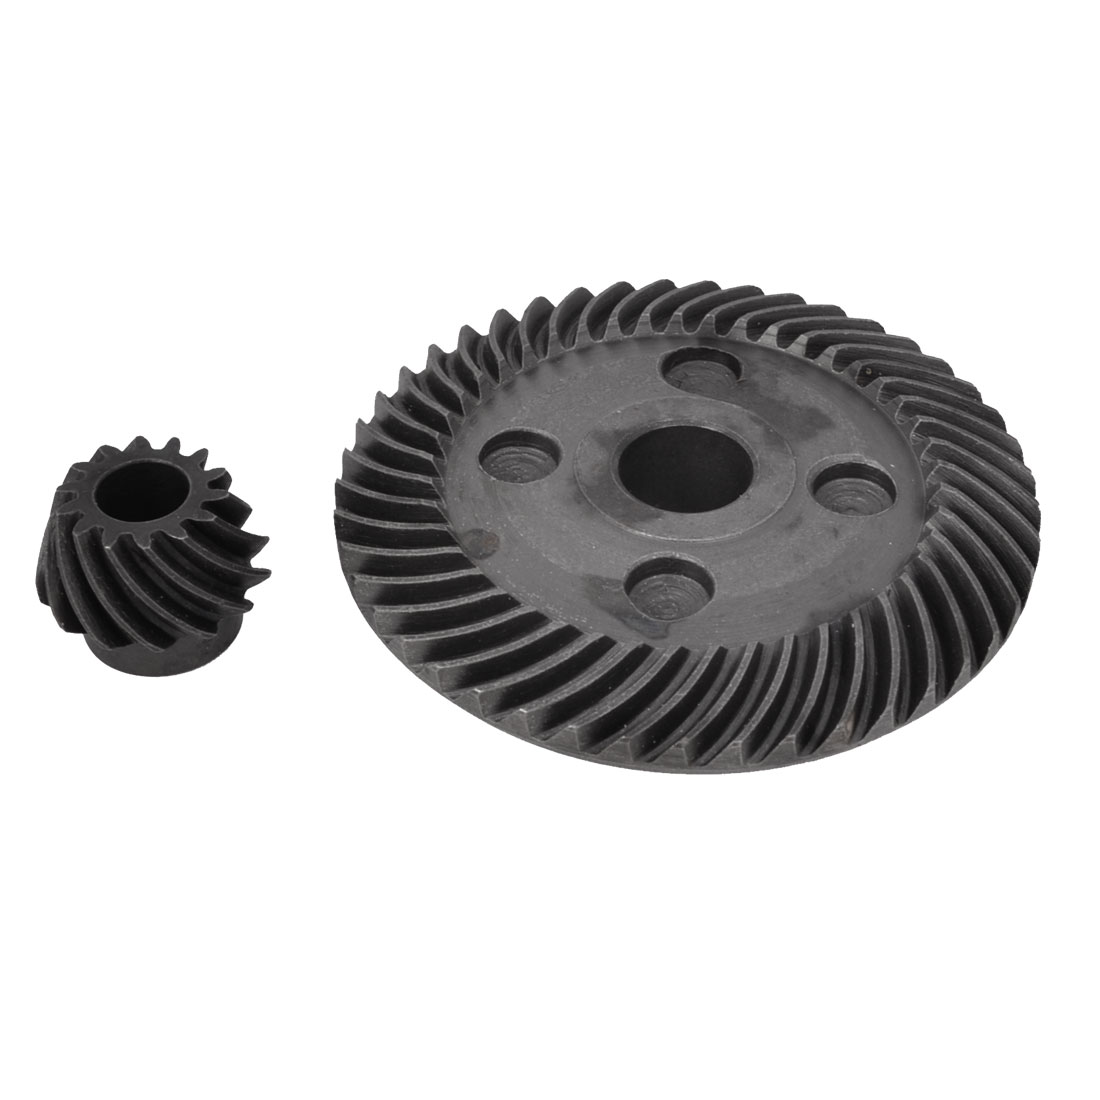 80mm Spiral Bevel Gear 26.5mm Pinion Set for Hitachi 180 Angle Grinder